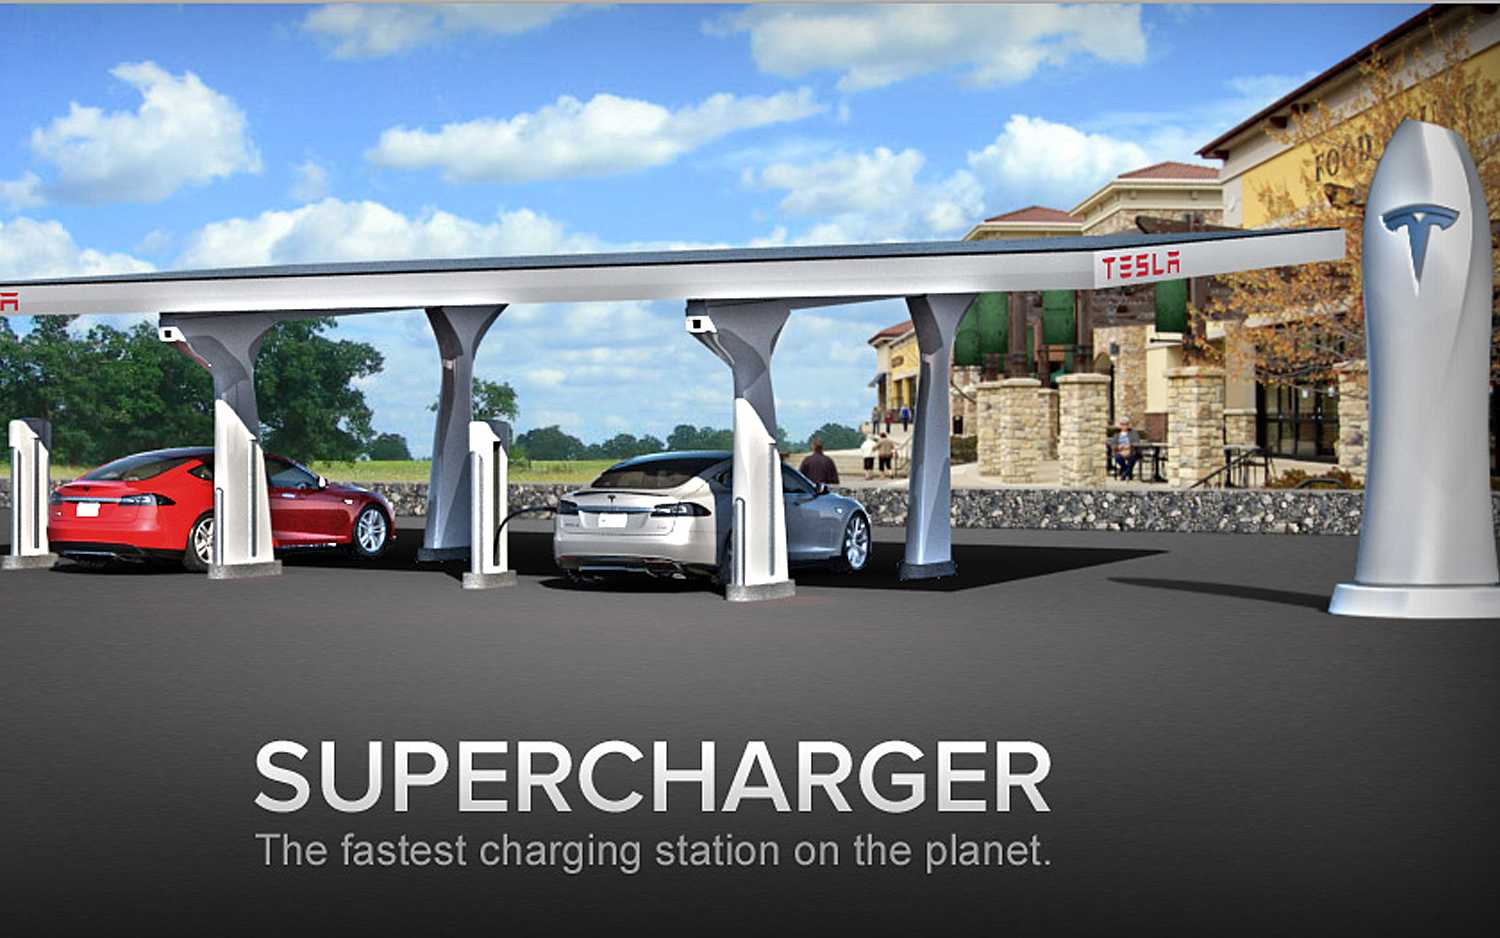 Tesla Motors Upcoming Charging Stations In New York Will Facilitate Wiring Garage For Model S Owners